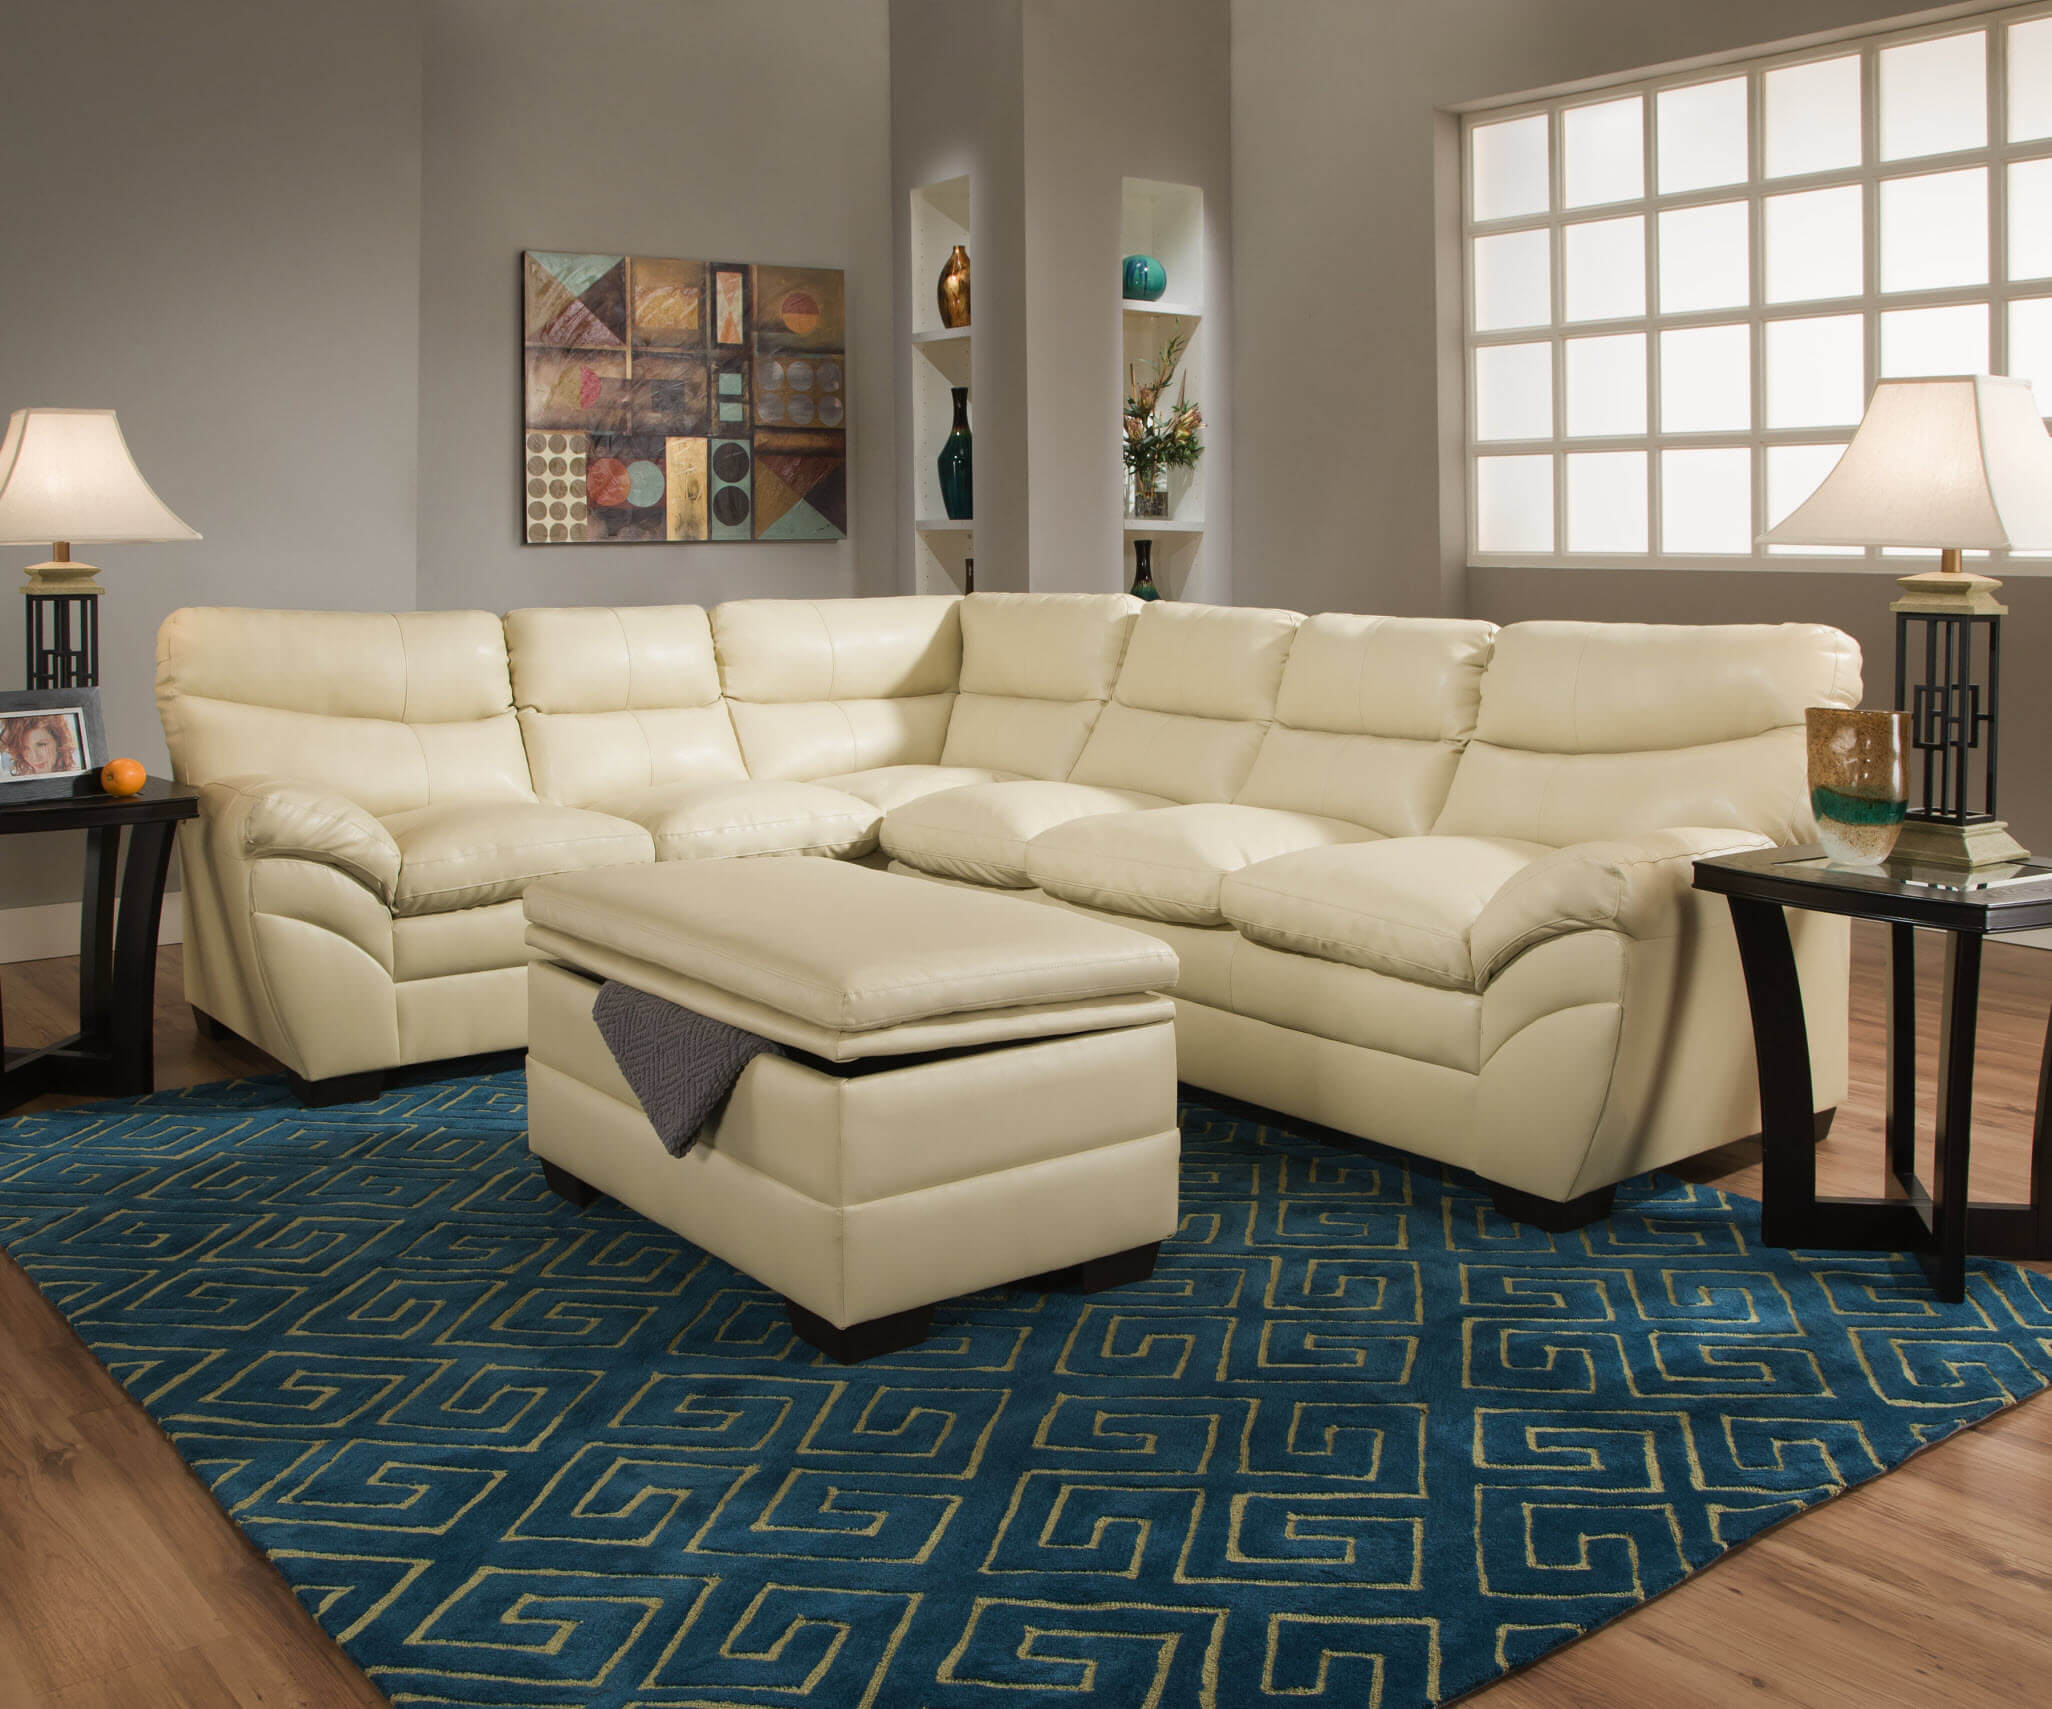 Sectional Sofa Sets : soho sectional - Sectionals, Sofas & Couches